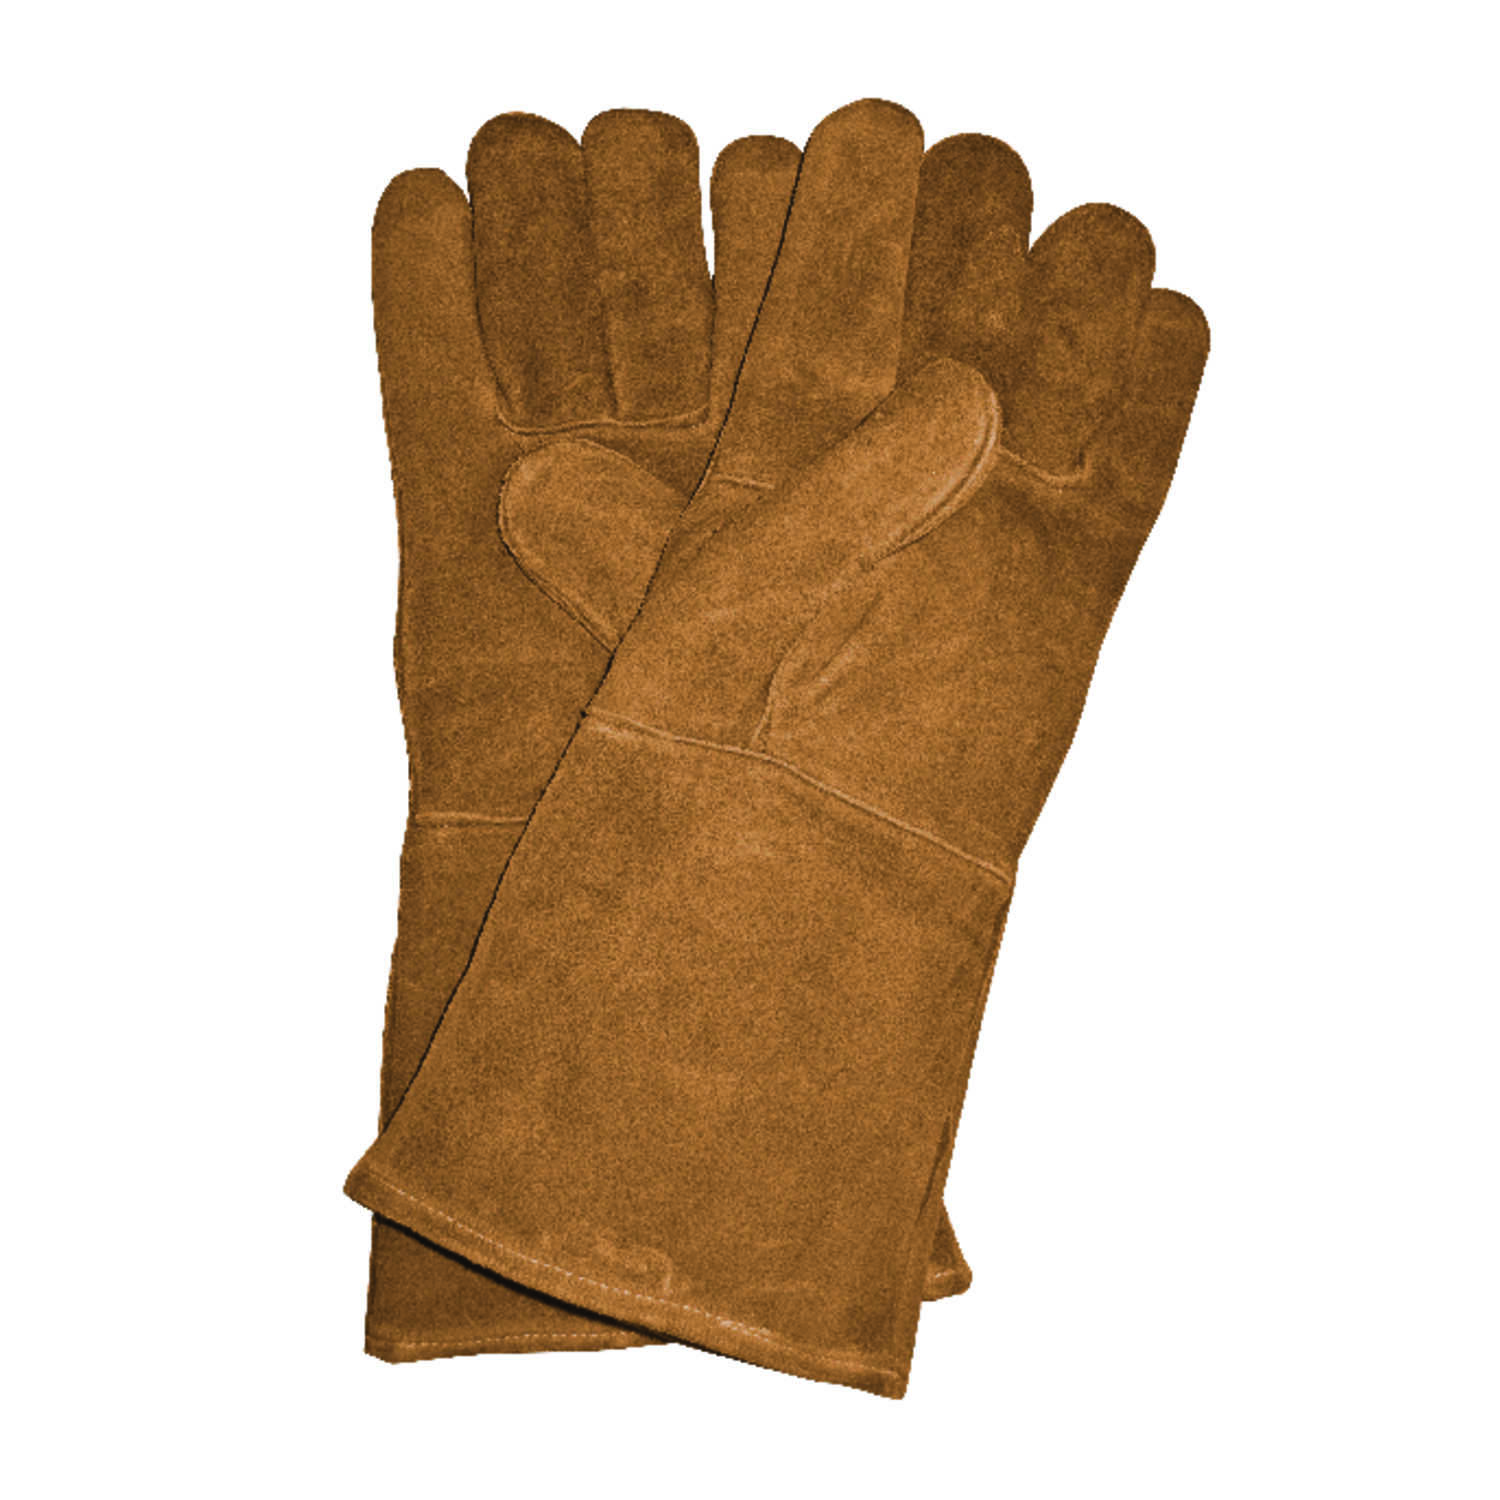 Panacea  Unisex  Indoor/Outdoor  Leather  Heavy Duty  Gloves  Brown  One Size Fits All